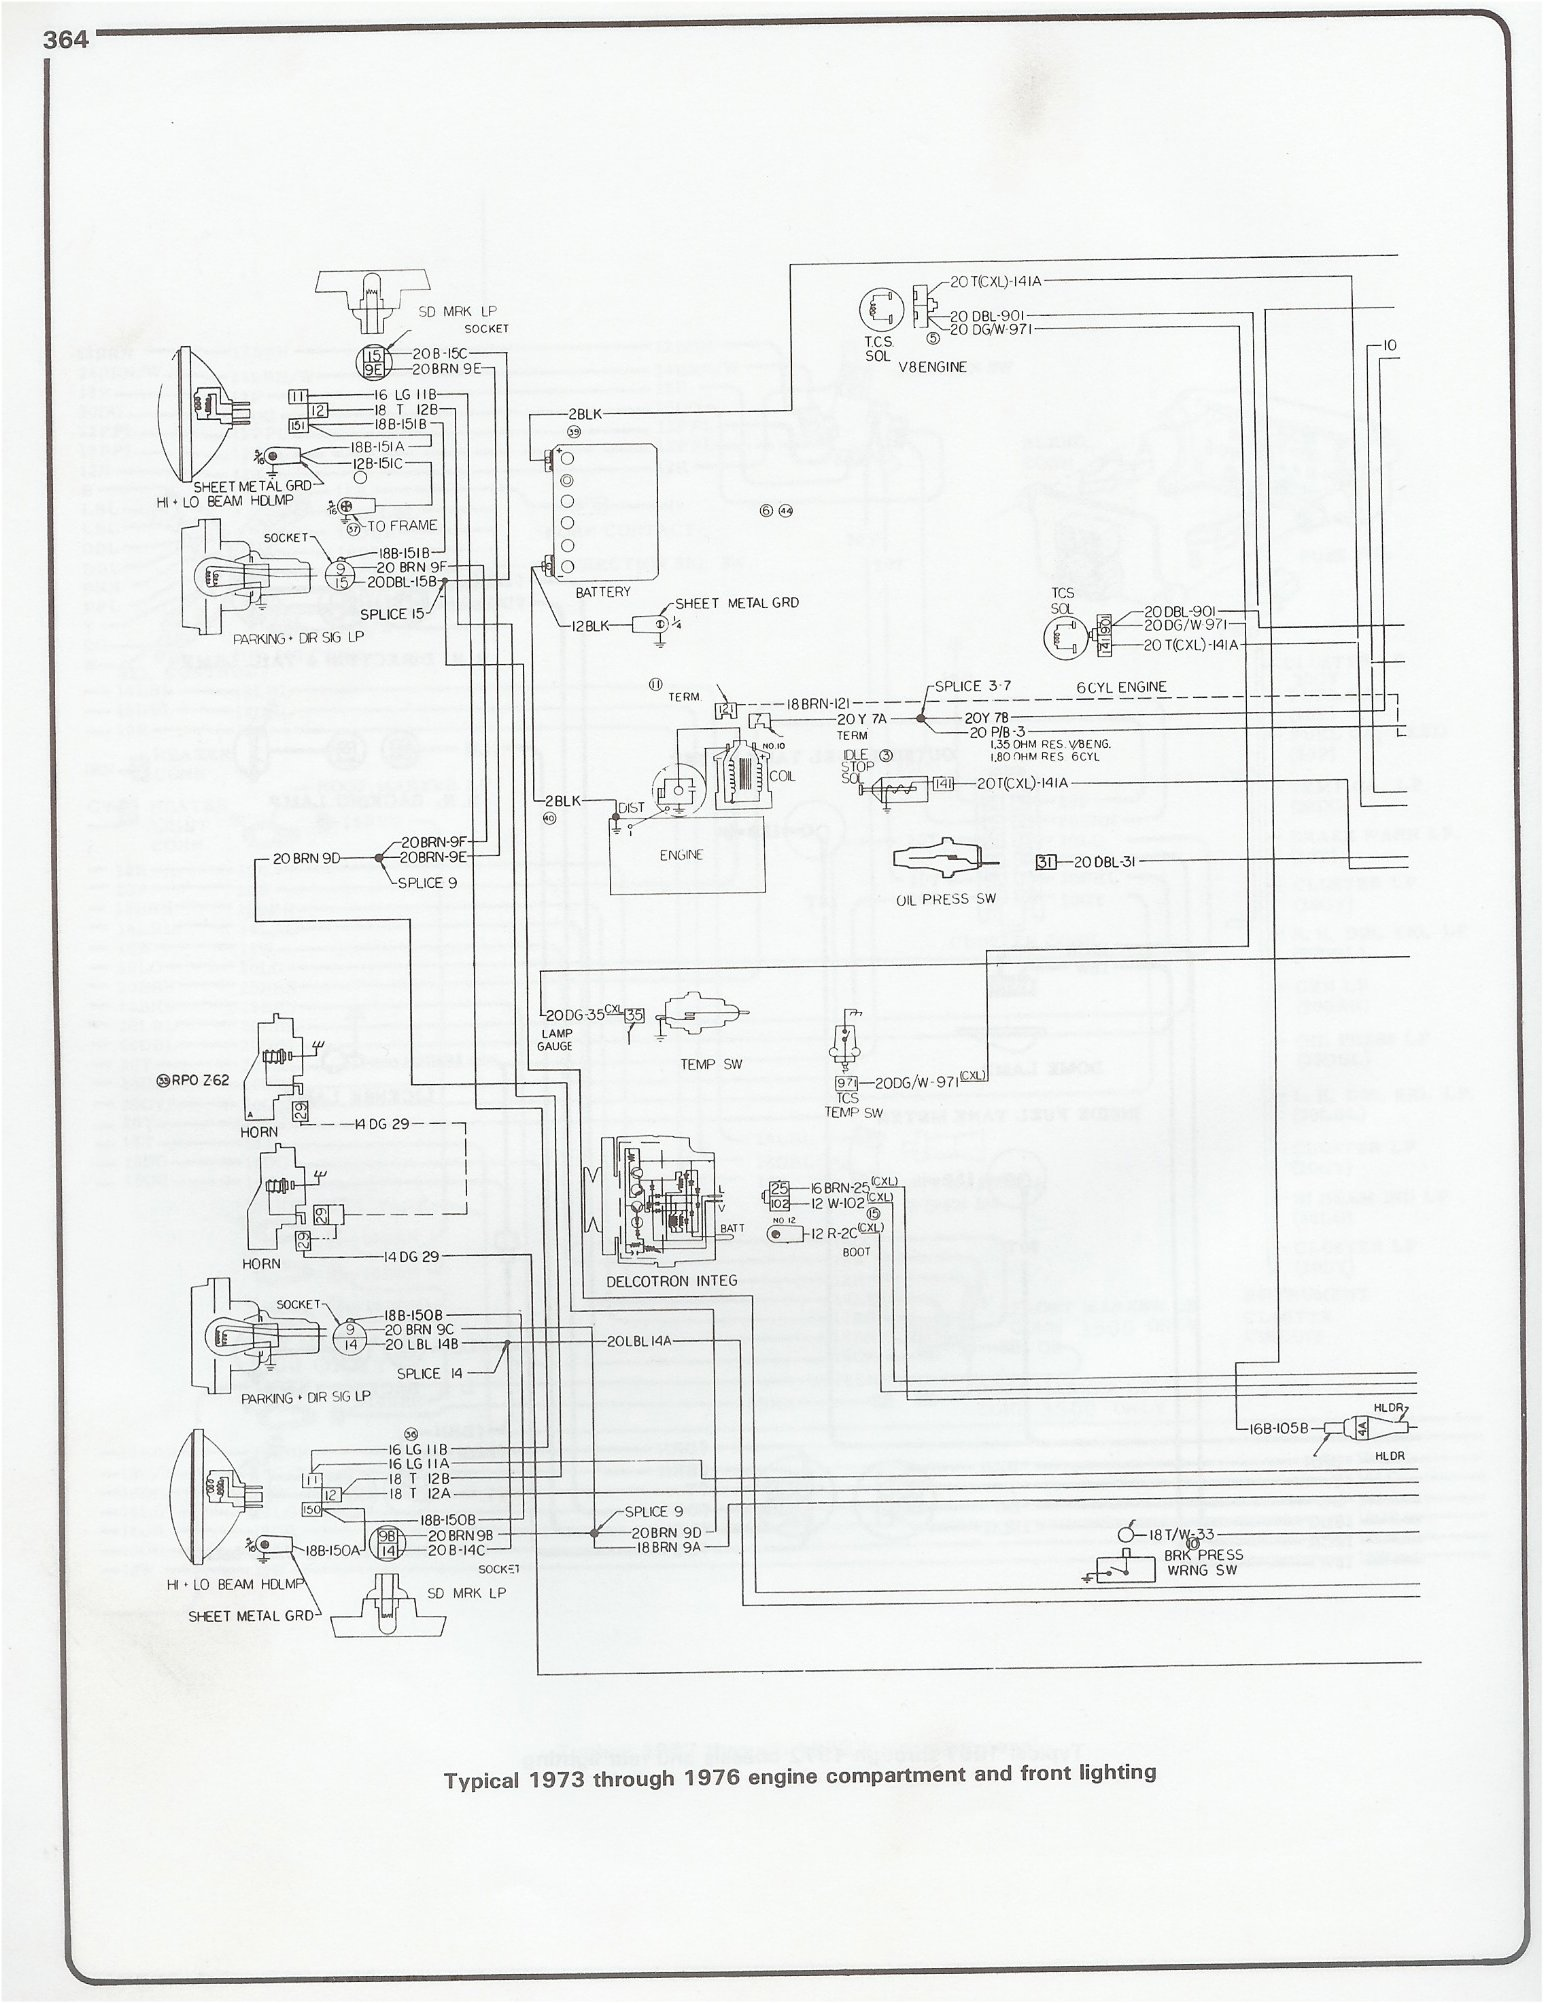 73 76_eng_frt_light complete 73 87 wiring diagrams 2008 Chevy Silverado Wiring Diagram at bayanpartner.co